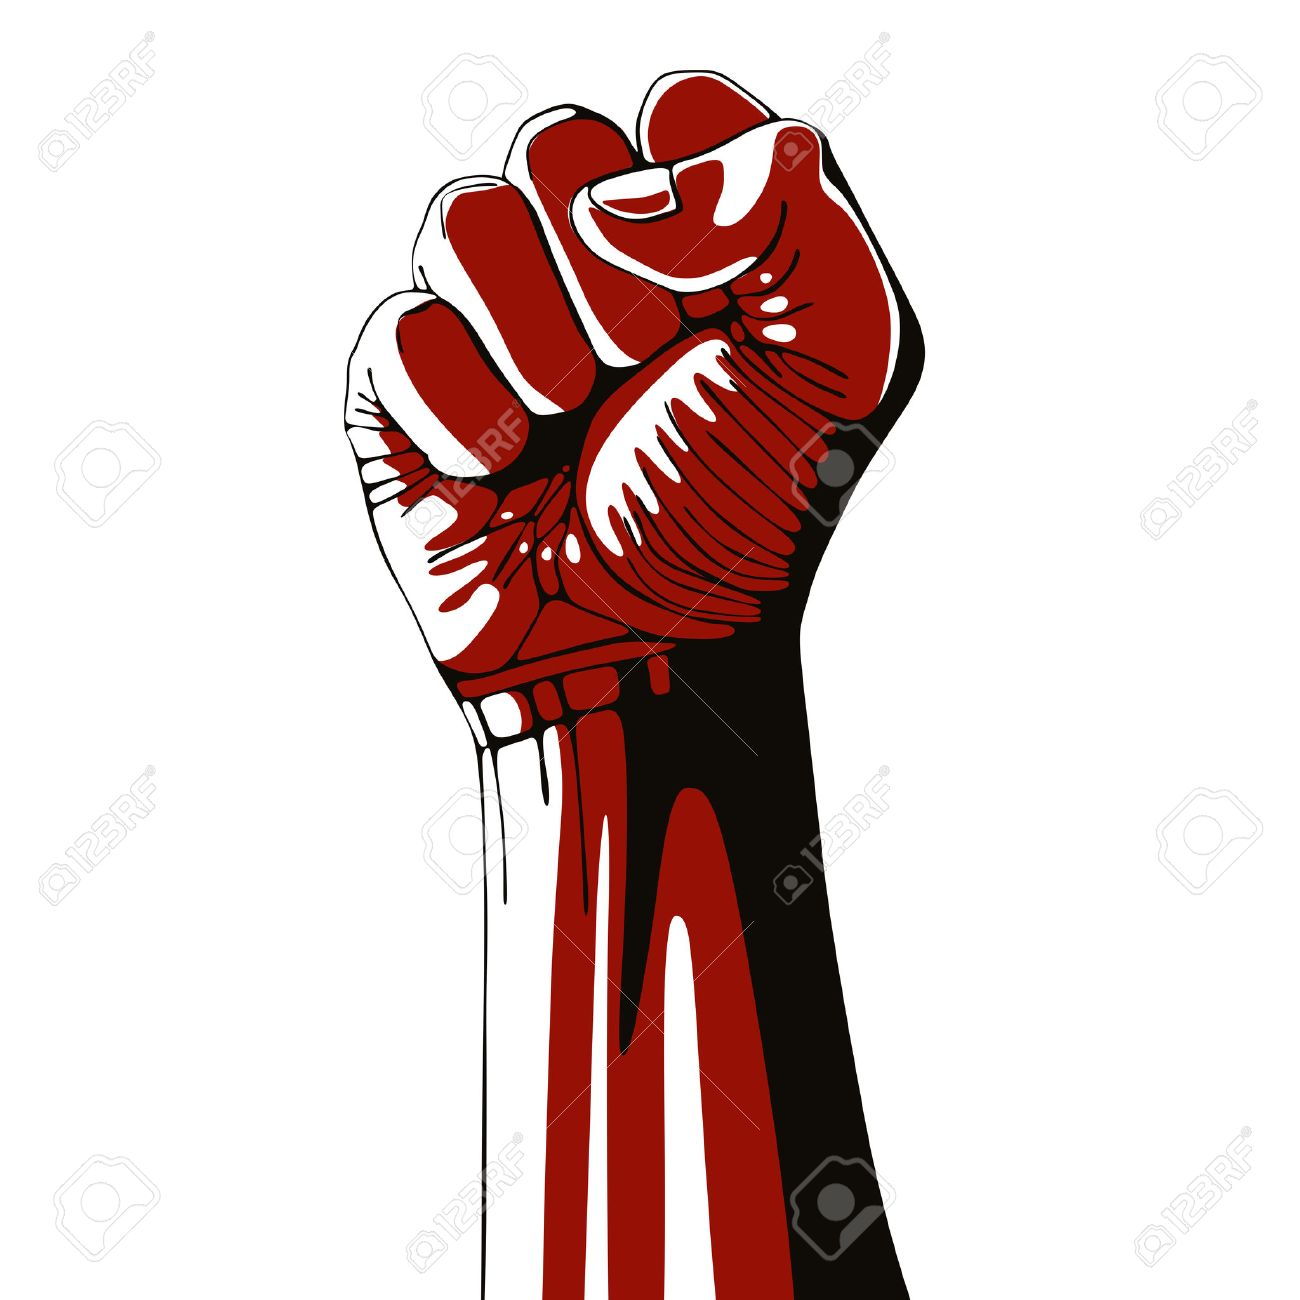 Clenched fist held high in protest isolated on white background, vector illustration. Stock Vector - 31990300